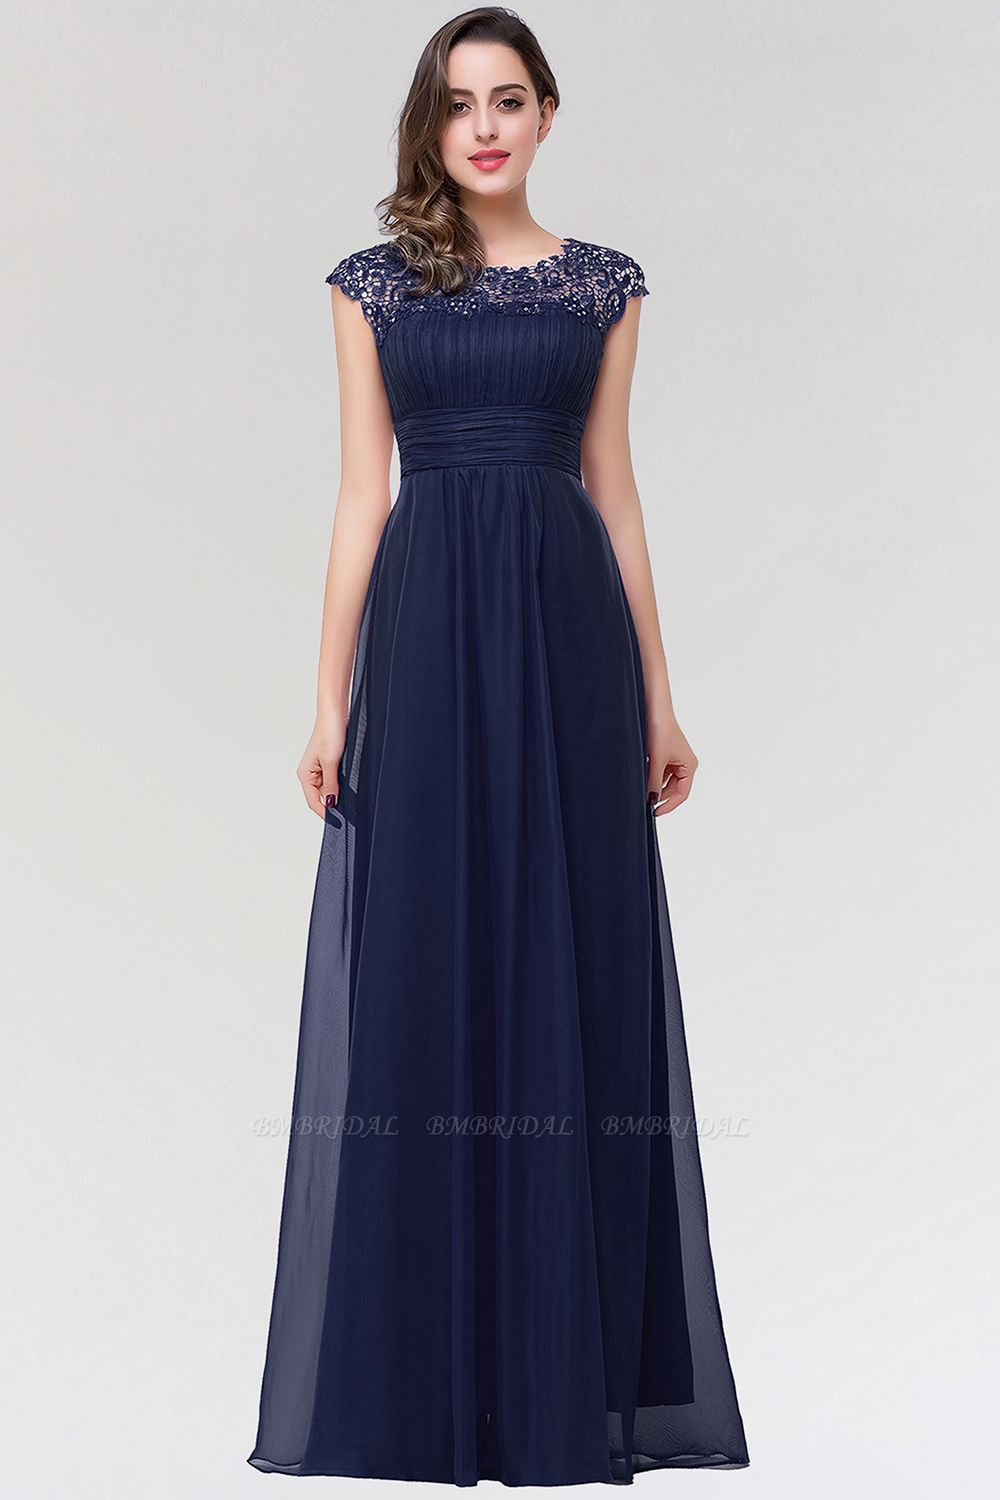 BMbridal Elegant Chiffon Pleated Navy Lace Bridesmaid Dress with Keyhole Back